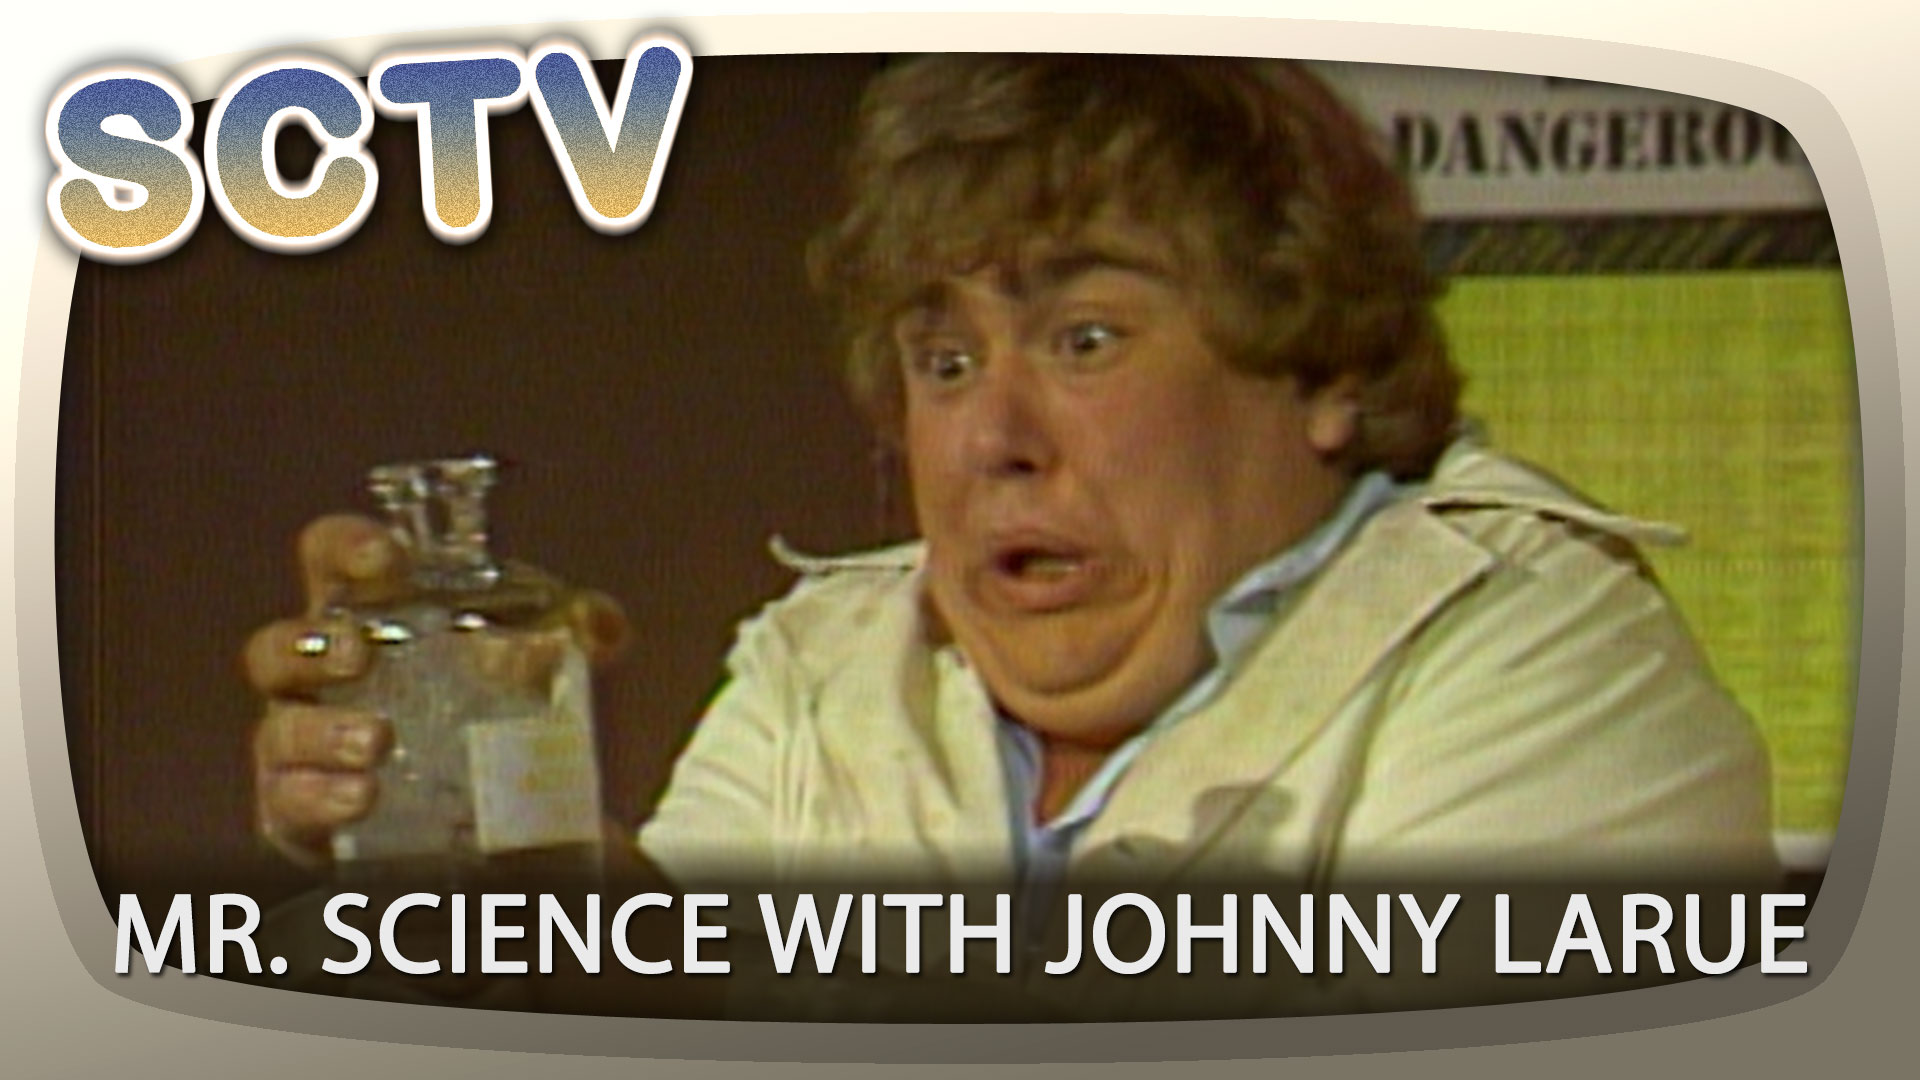 SCTV Mr. Science with Johnny LaRue